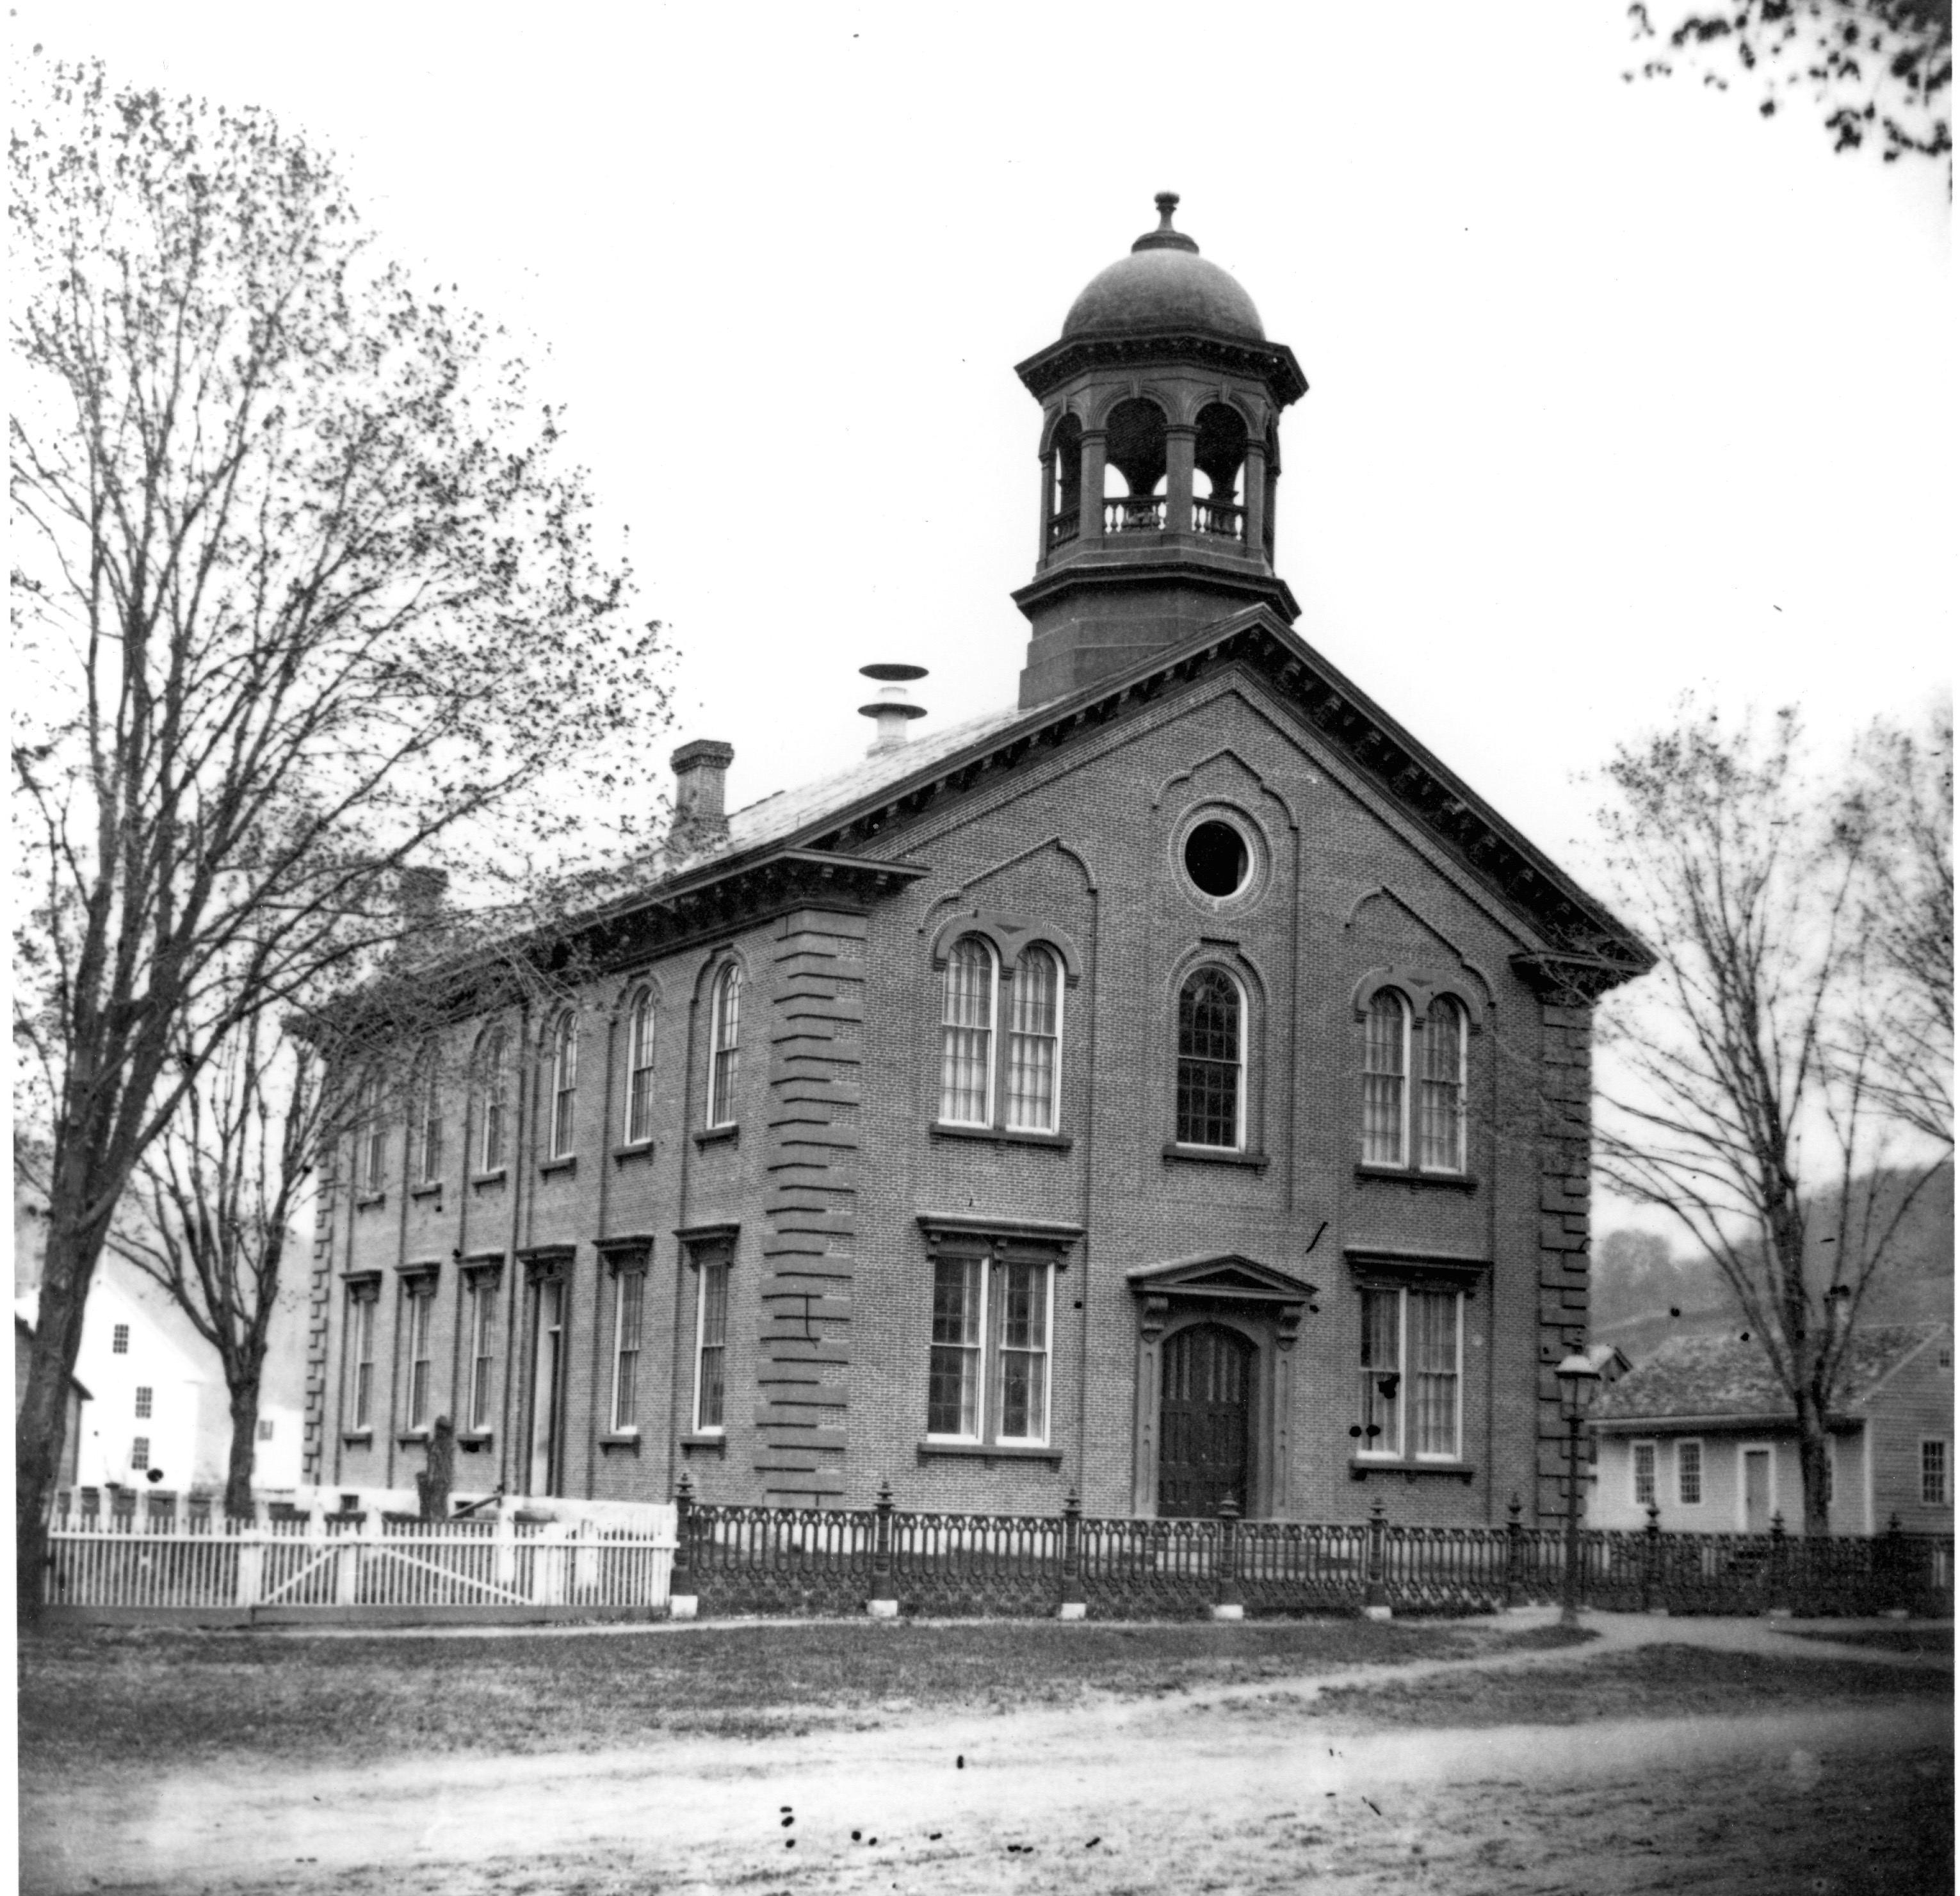 WINSDOR COUNTY COURTHOUSE CIRCA 1870.